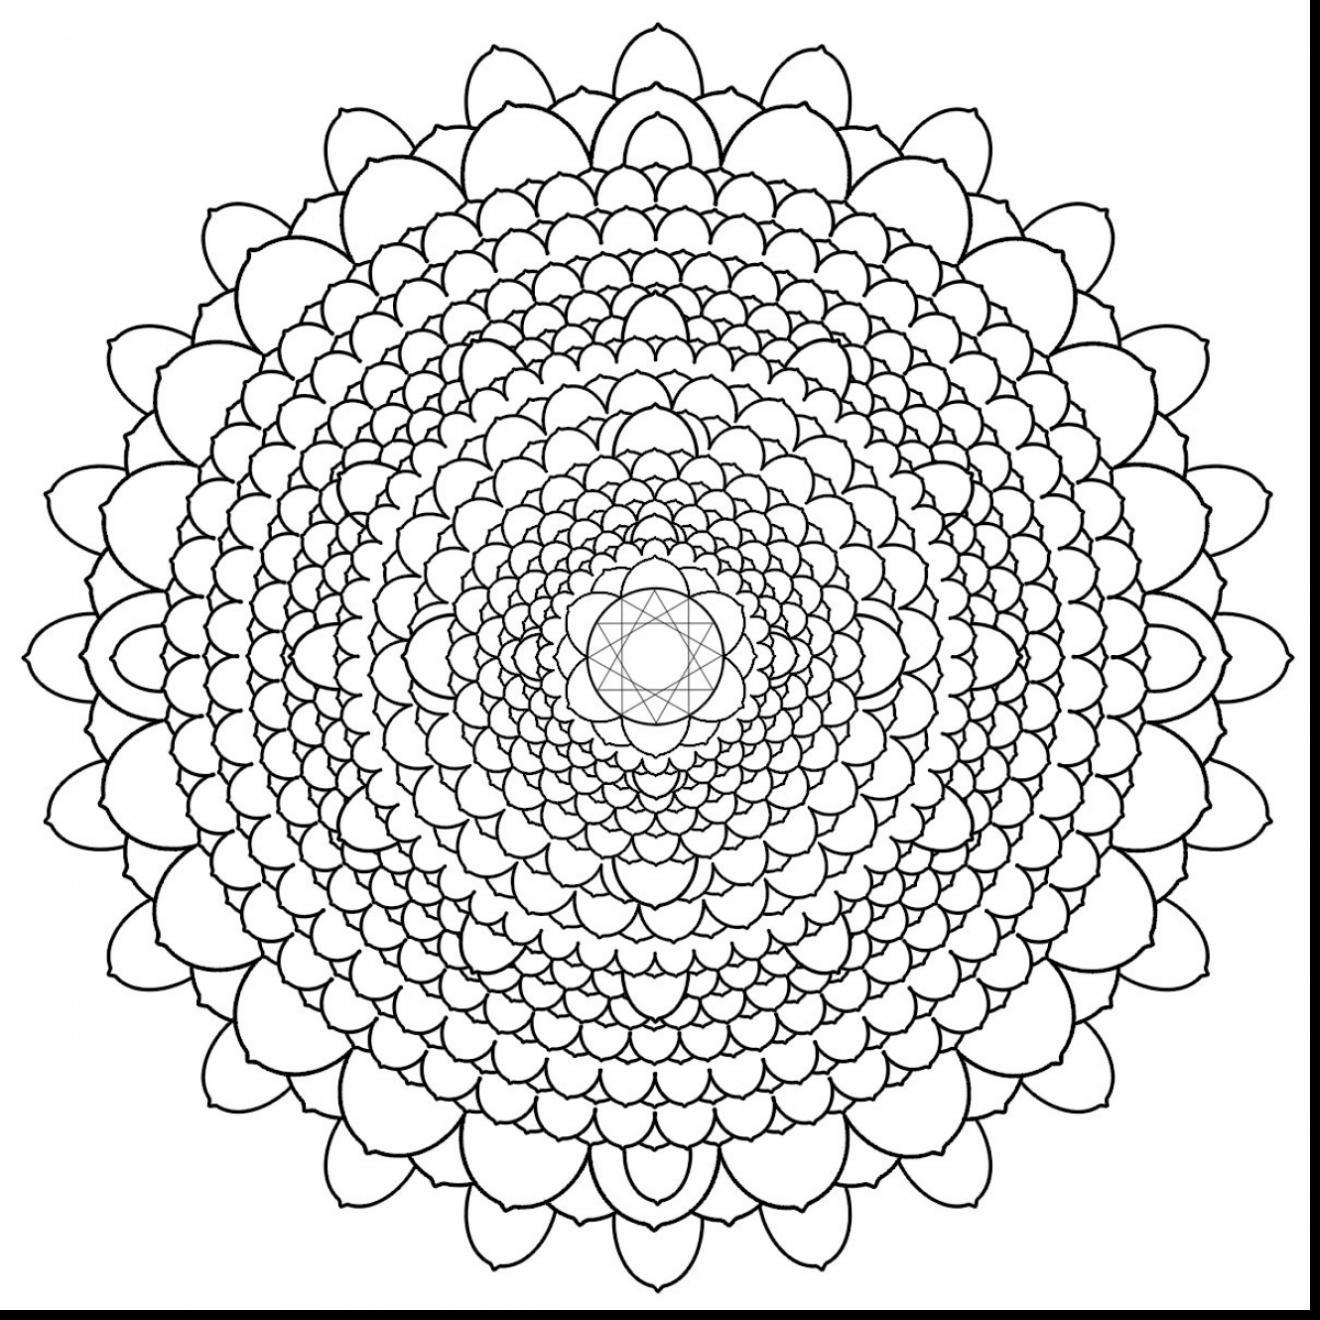 1320x1320 Mandala Flower Coloring Pages Difficult